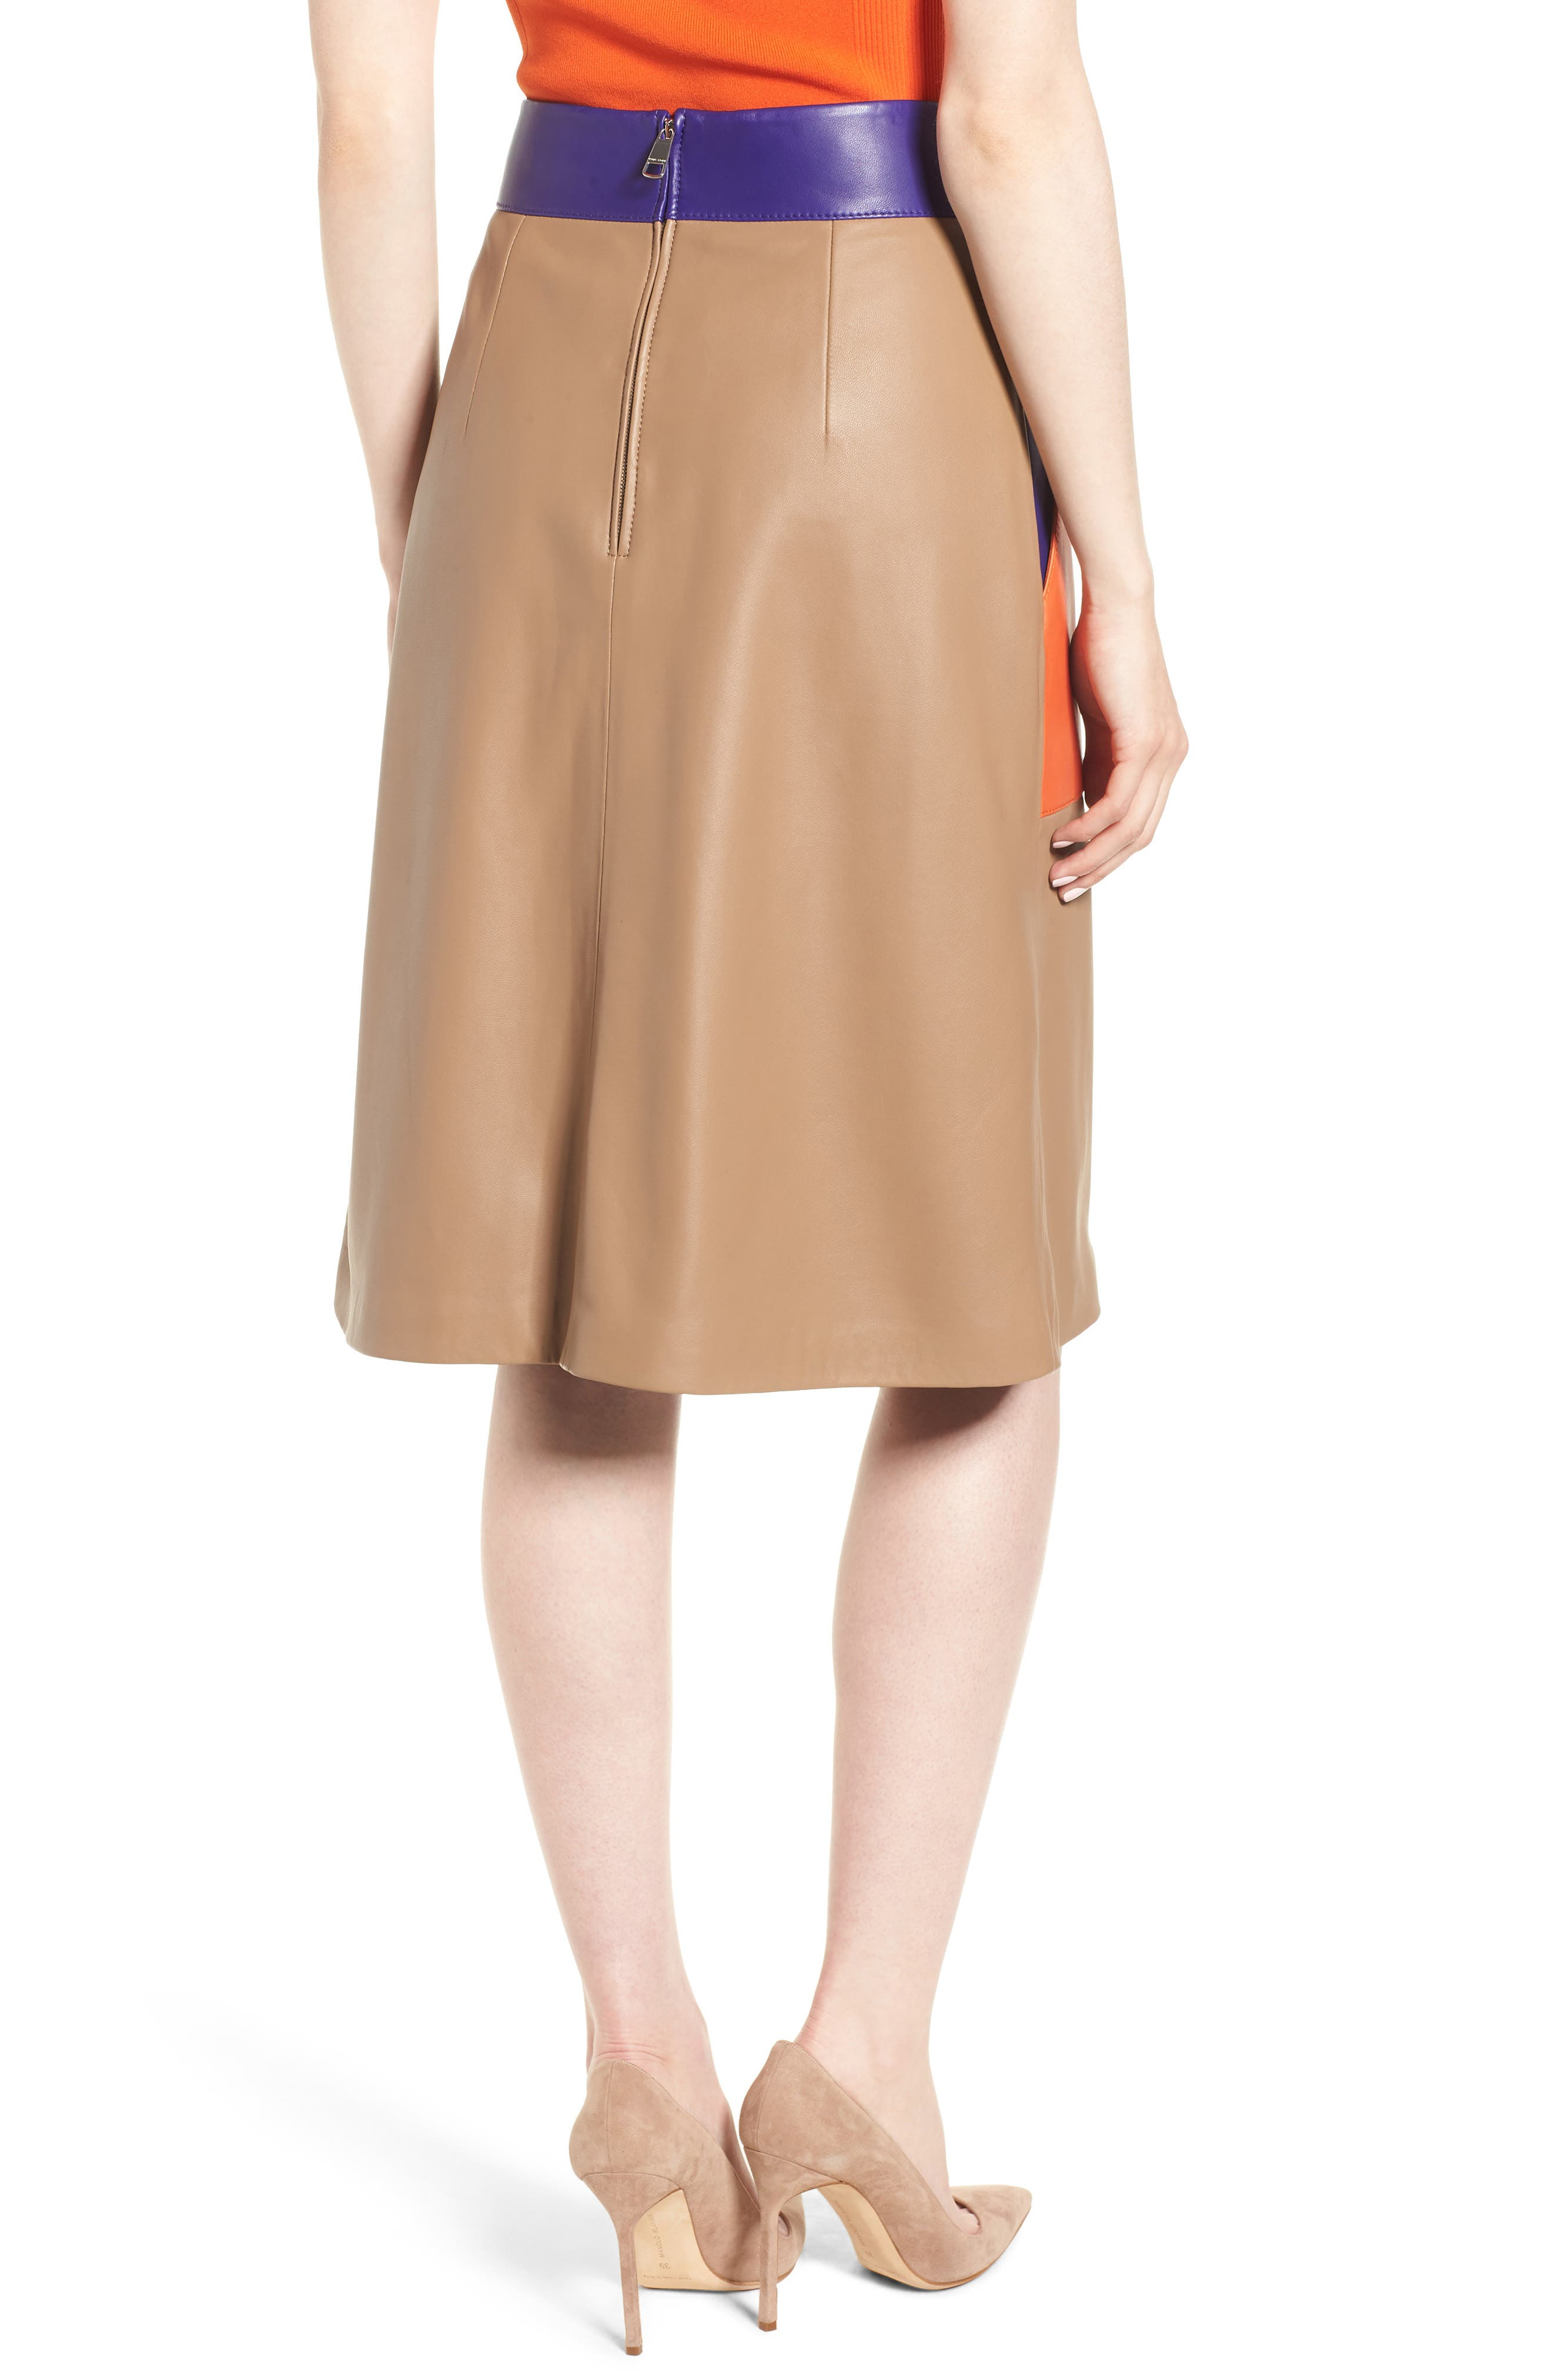 Seplea Colorblock Leather Skirt,                             Alternate thumbnail 2, color,                             264